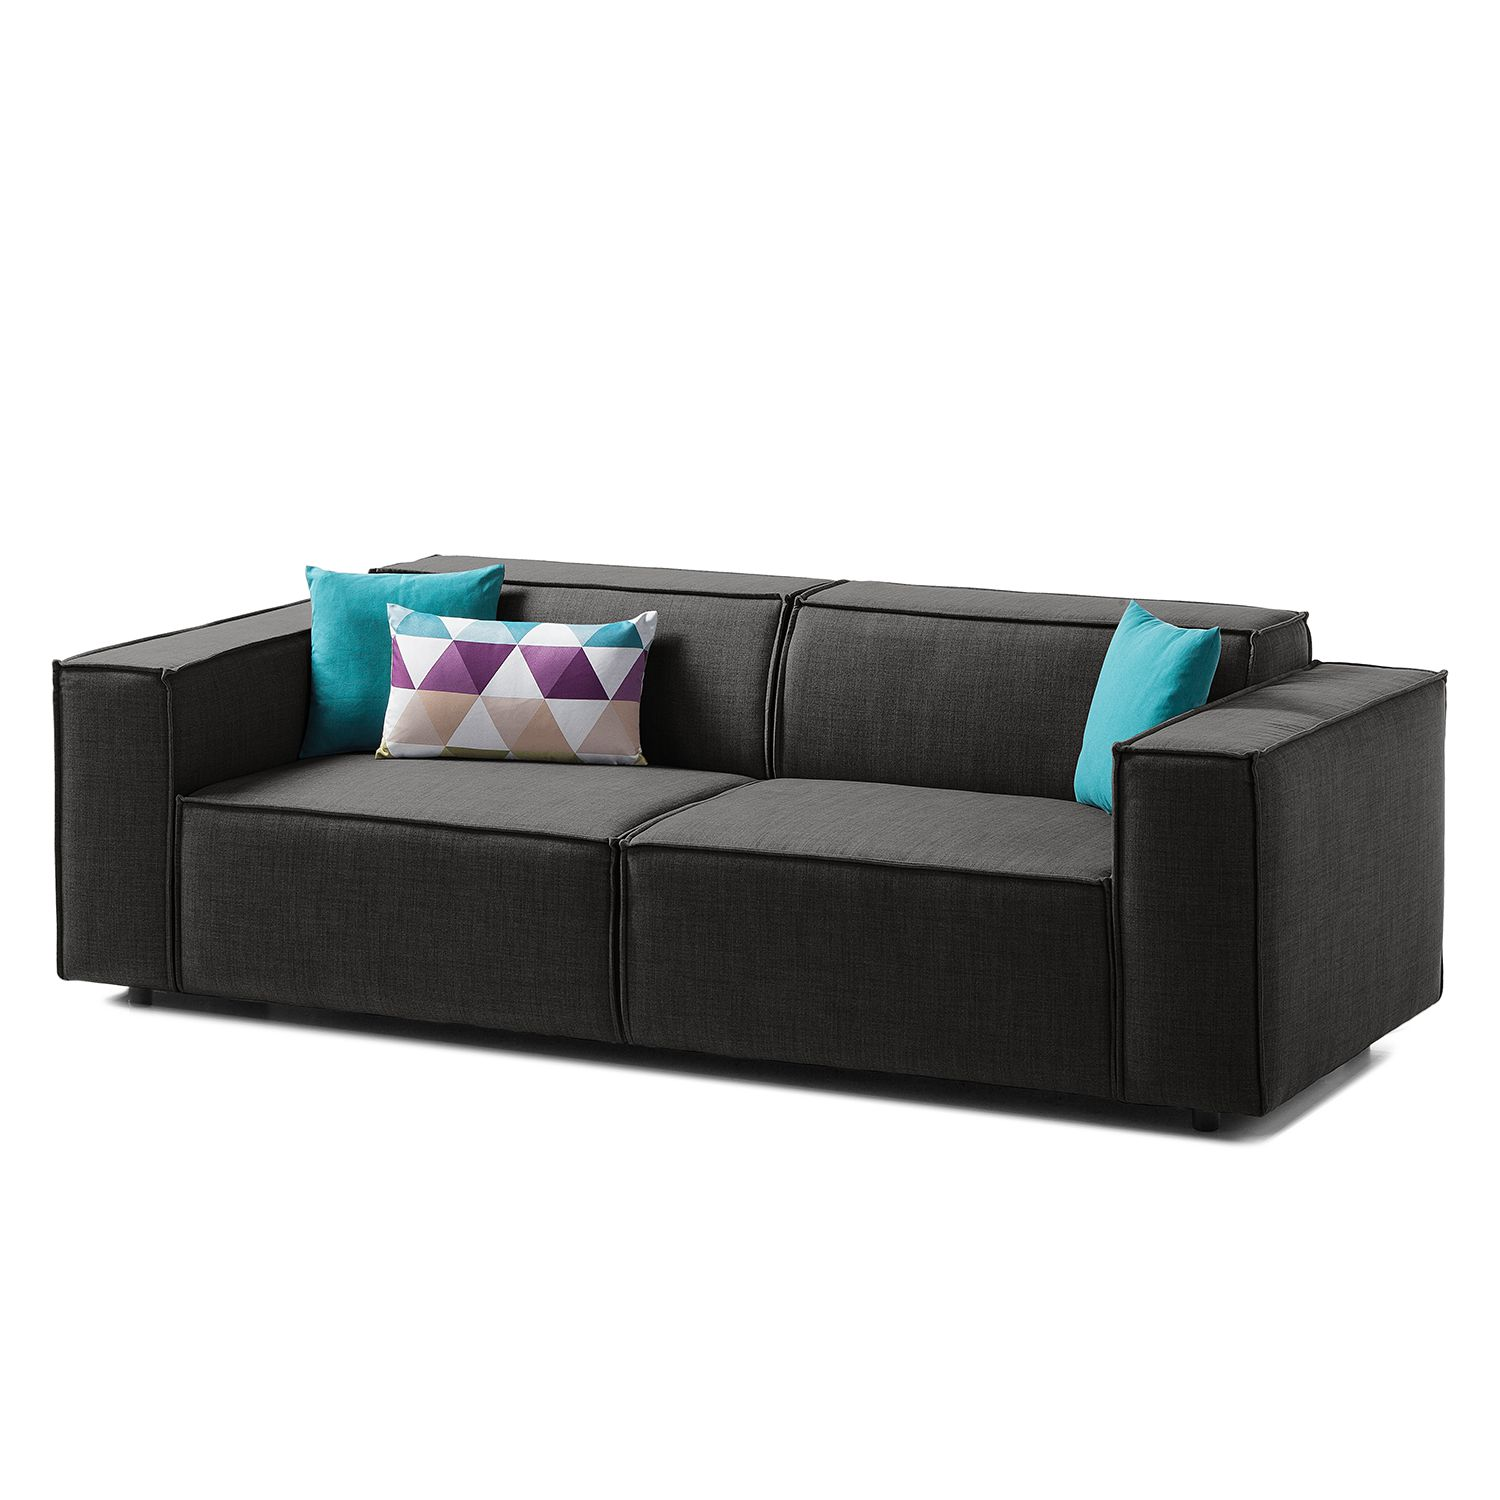 sofa kinx 2 5 sitzer webstoff stoff milan anthrazit kinx bestellen. Black Bedroom Furniture Sets. Home Design Ideas